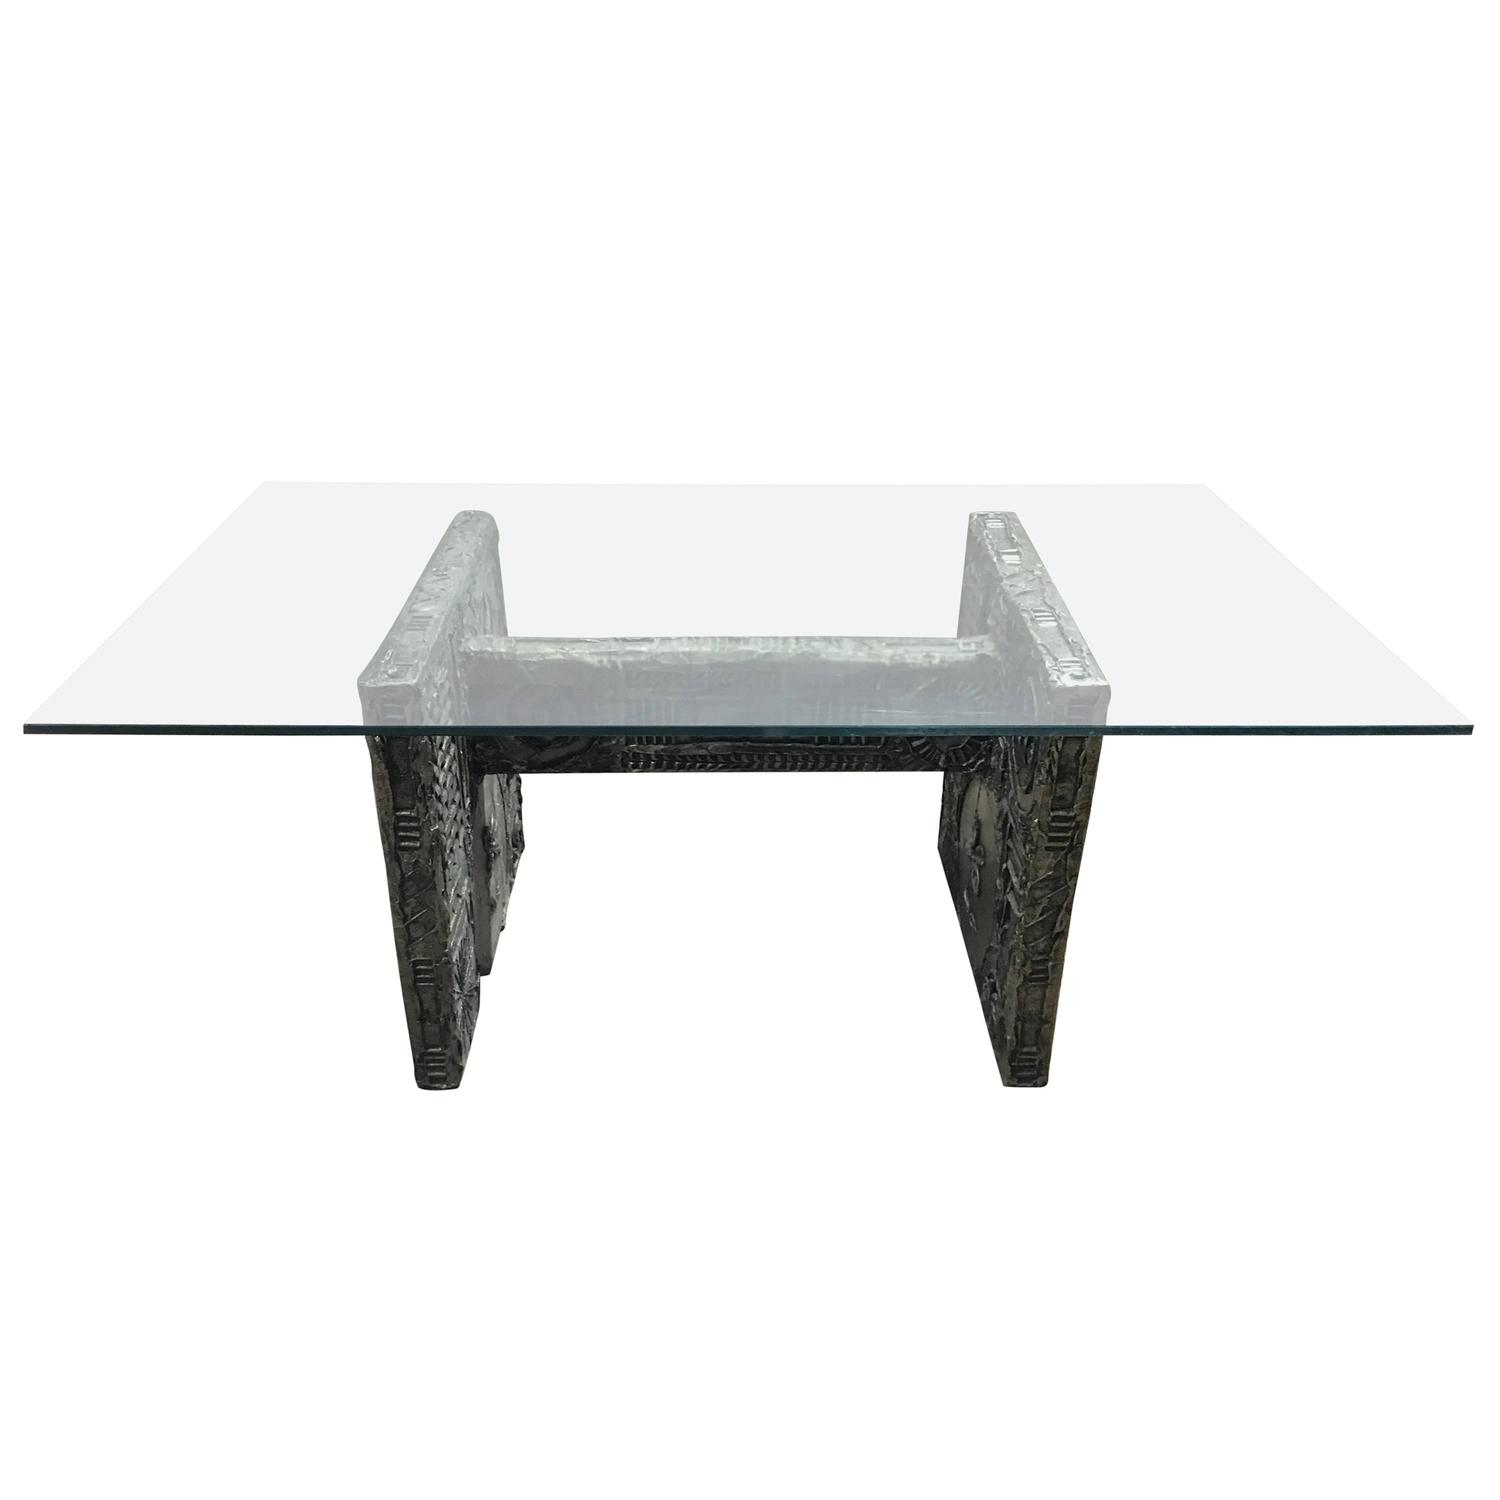 Adrian Pearsall for Craft Associates Dinning Table For  : 3855272z from 1stdibs.com size 1500 x 1500 jpeg 42kB